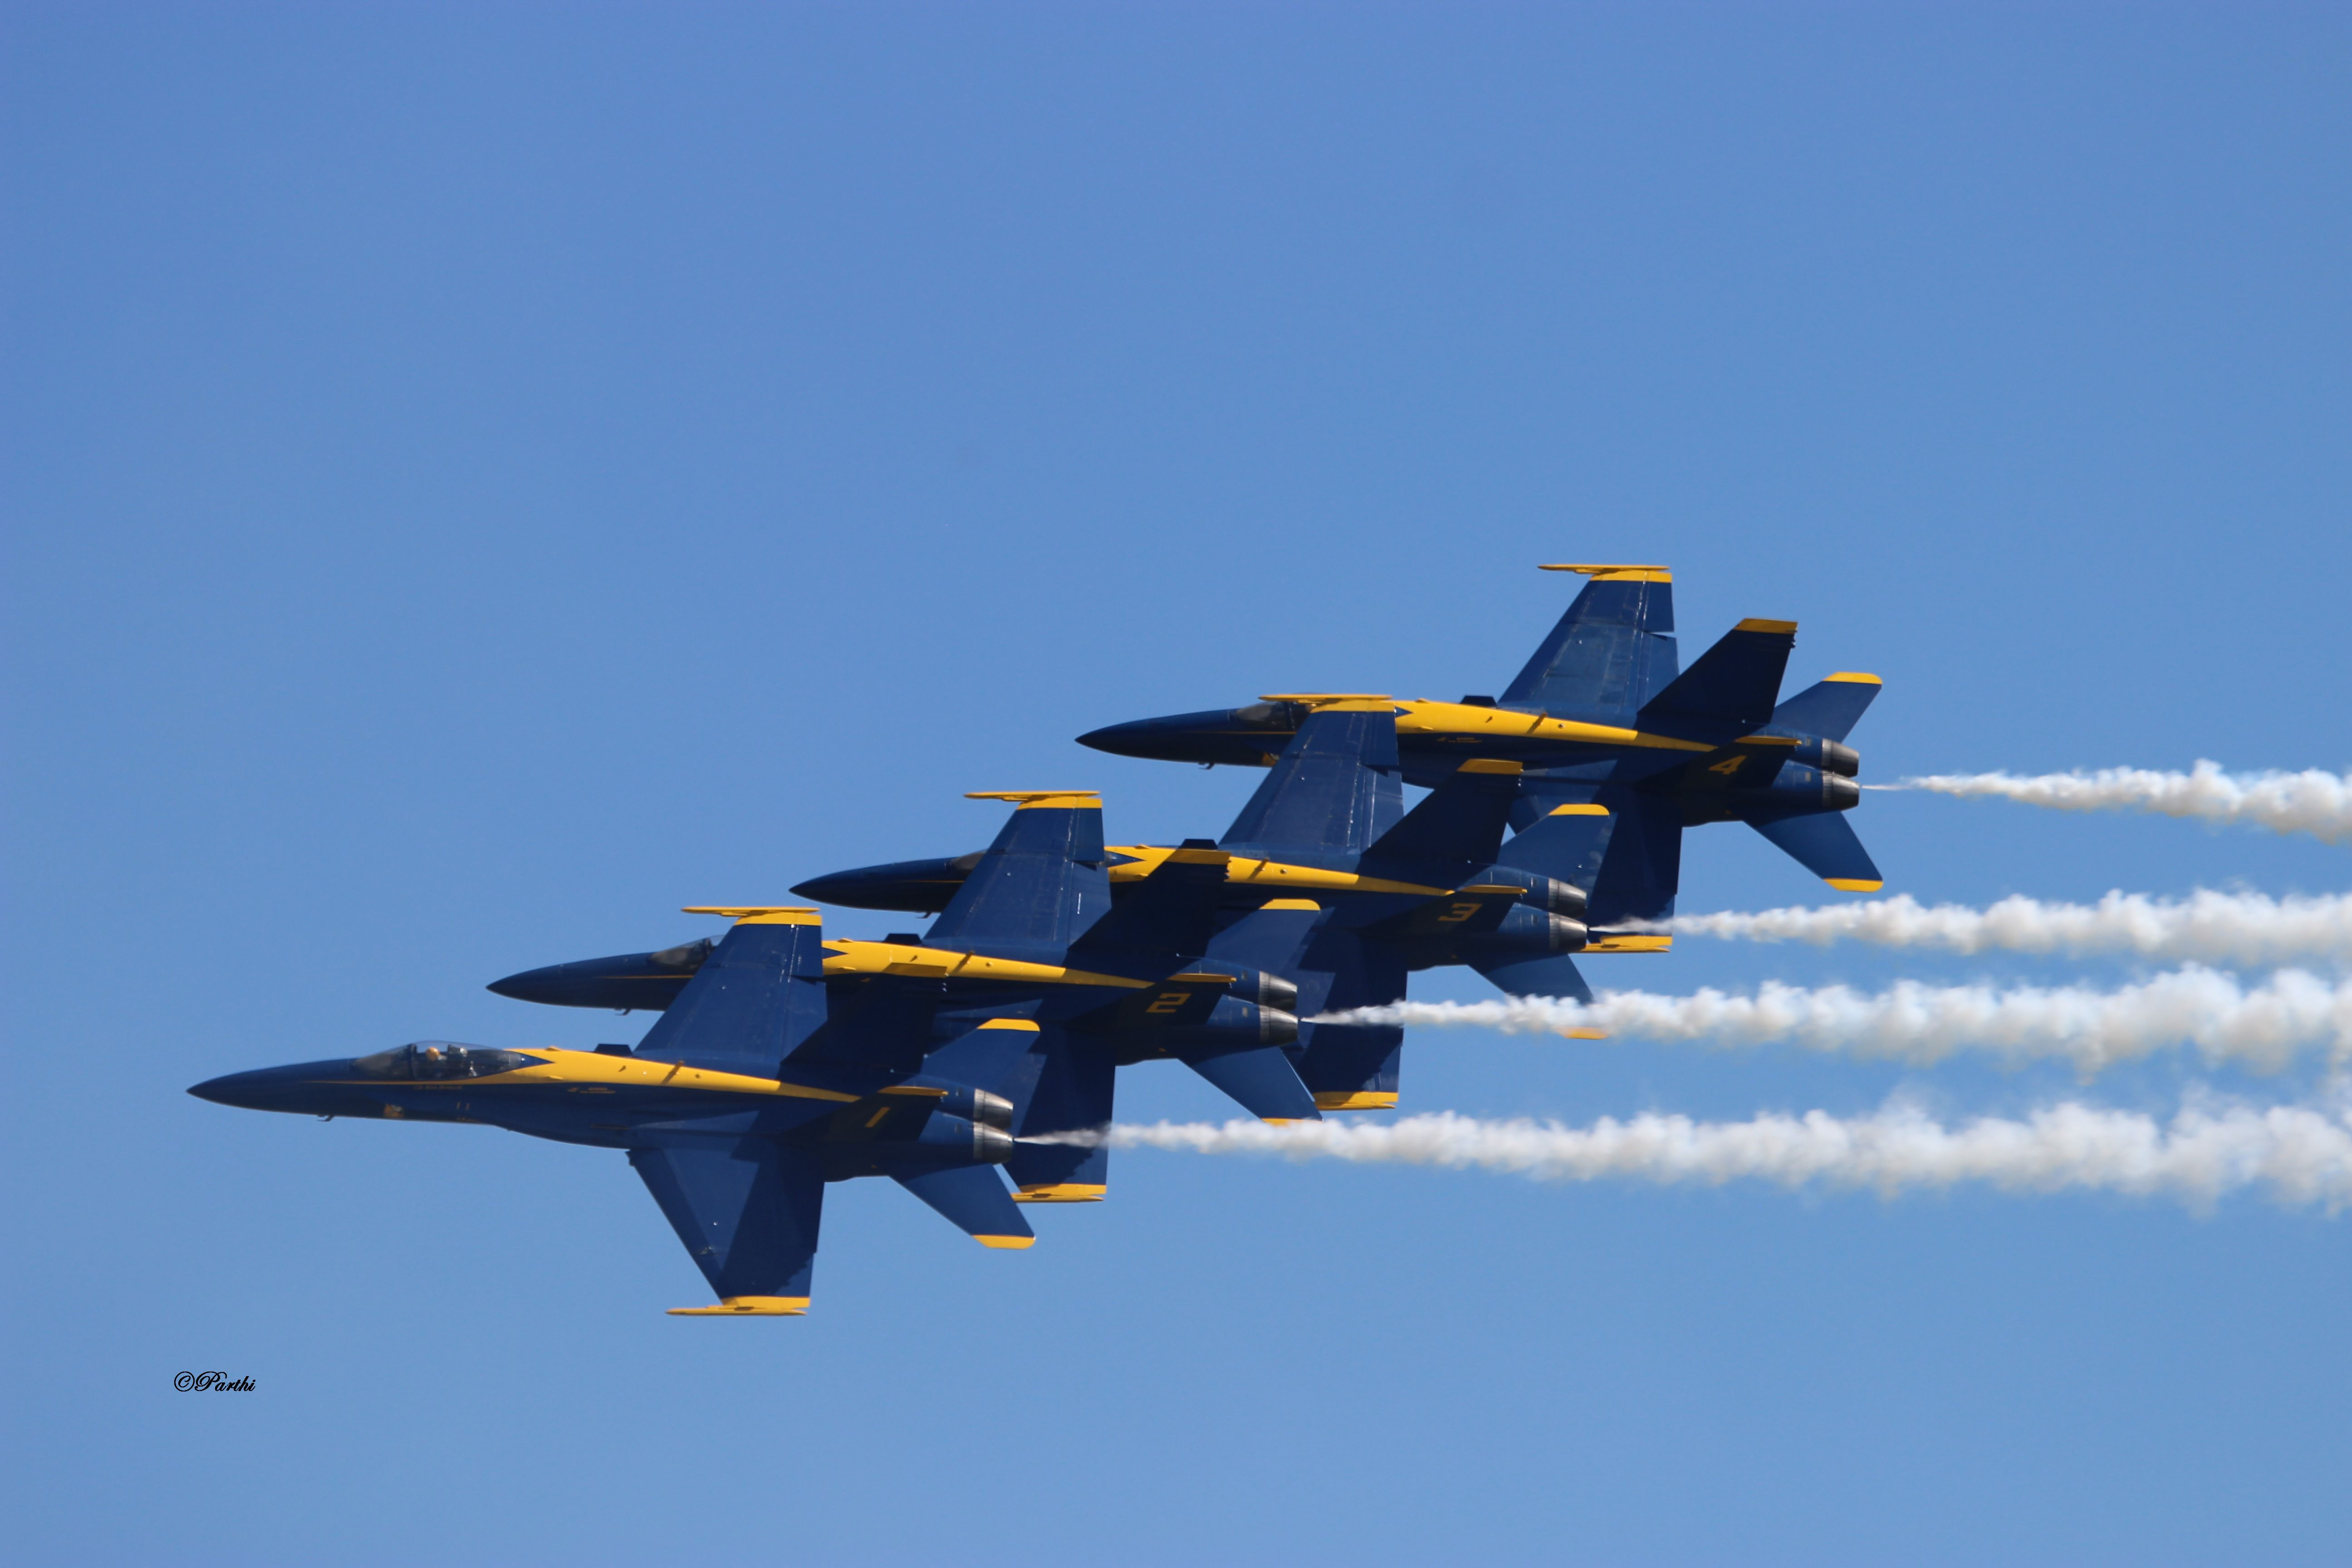 Pin by Parthiban Jayapal on Air Show Us navy blue angels